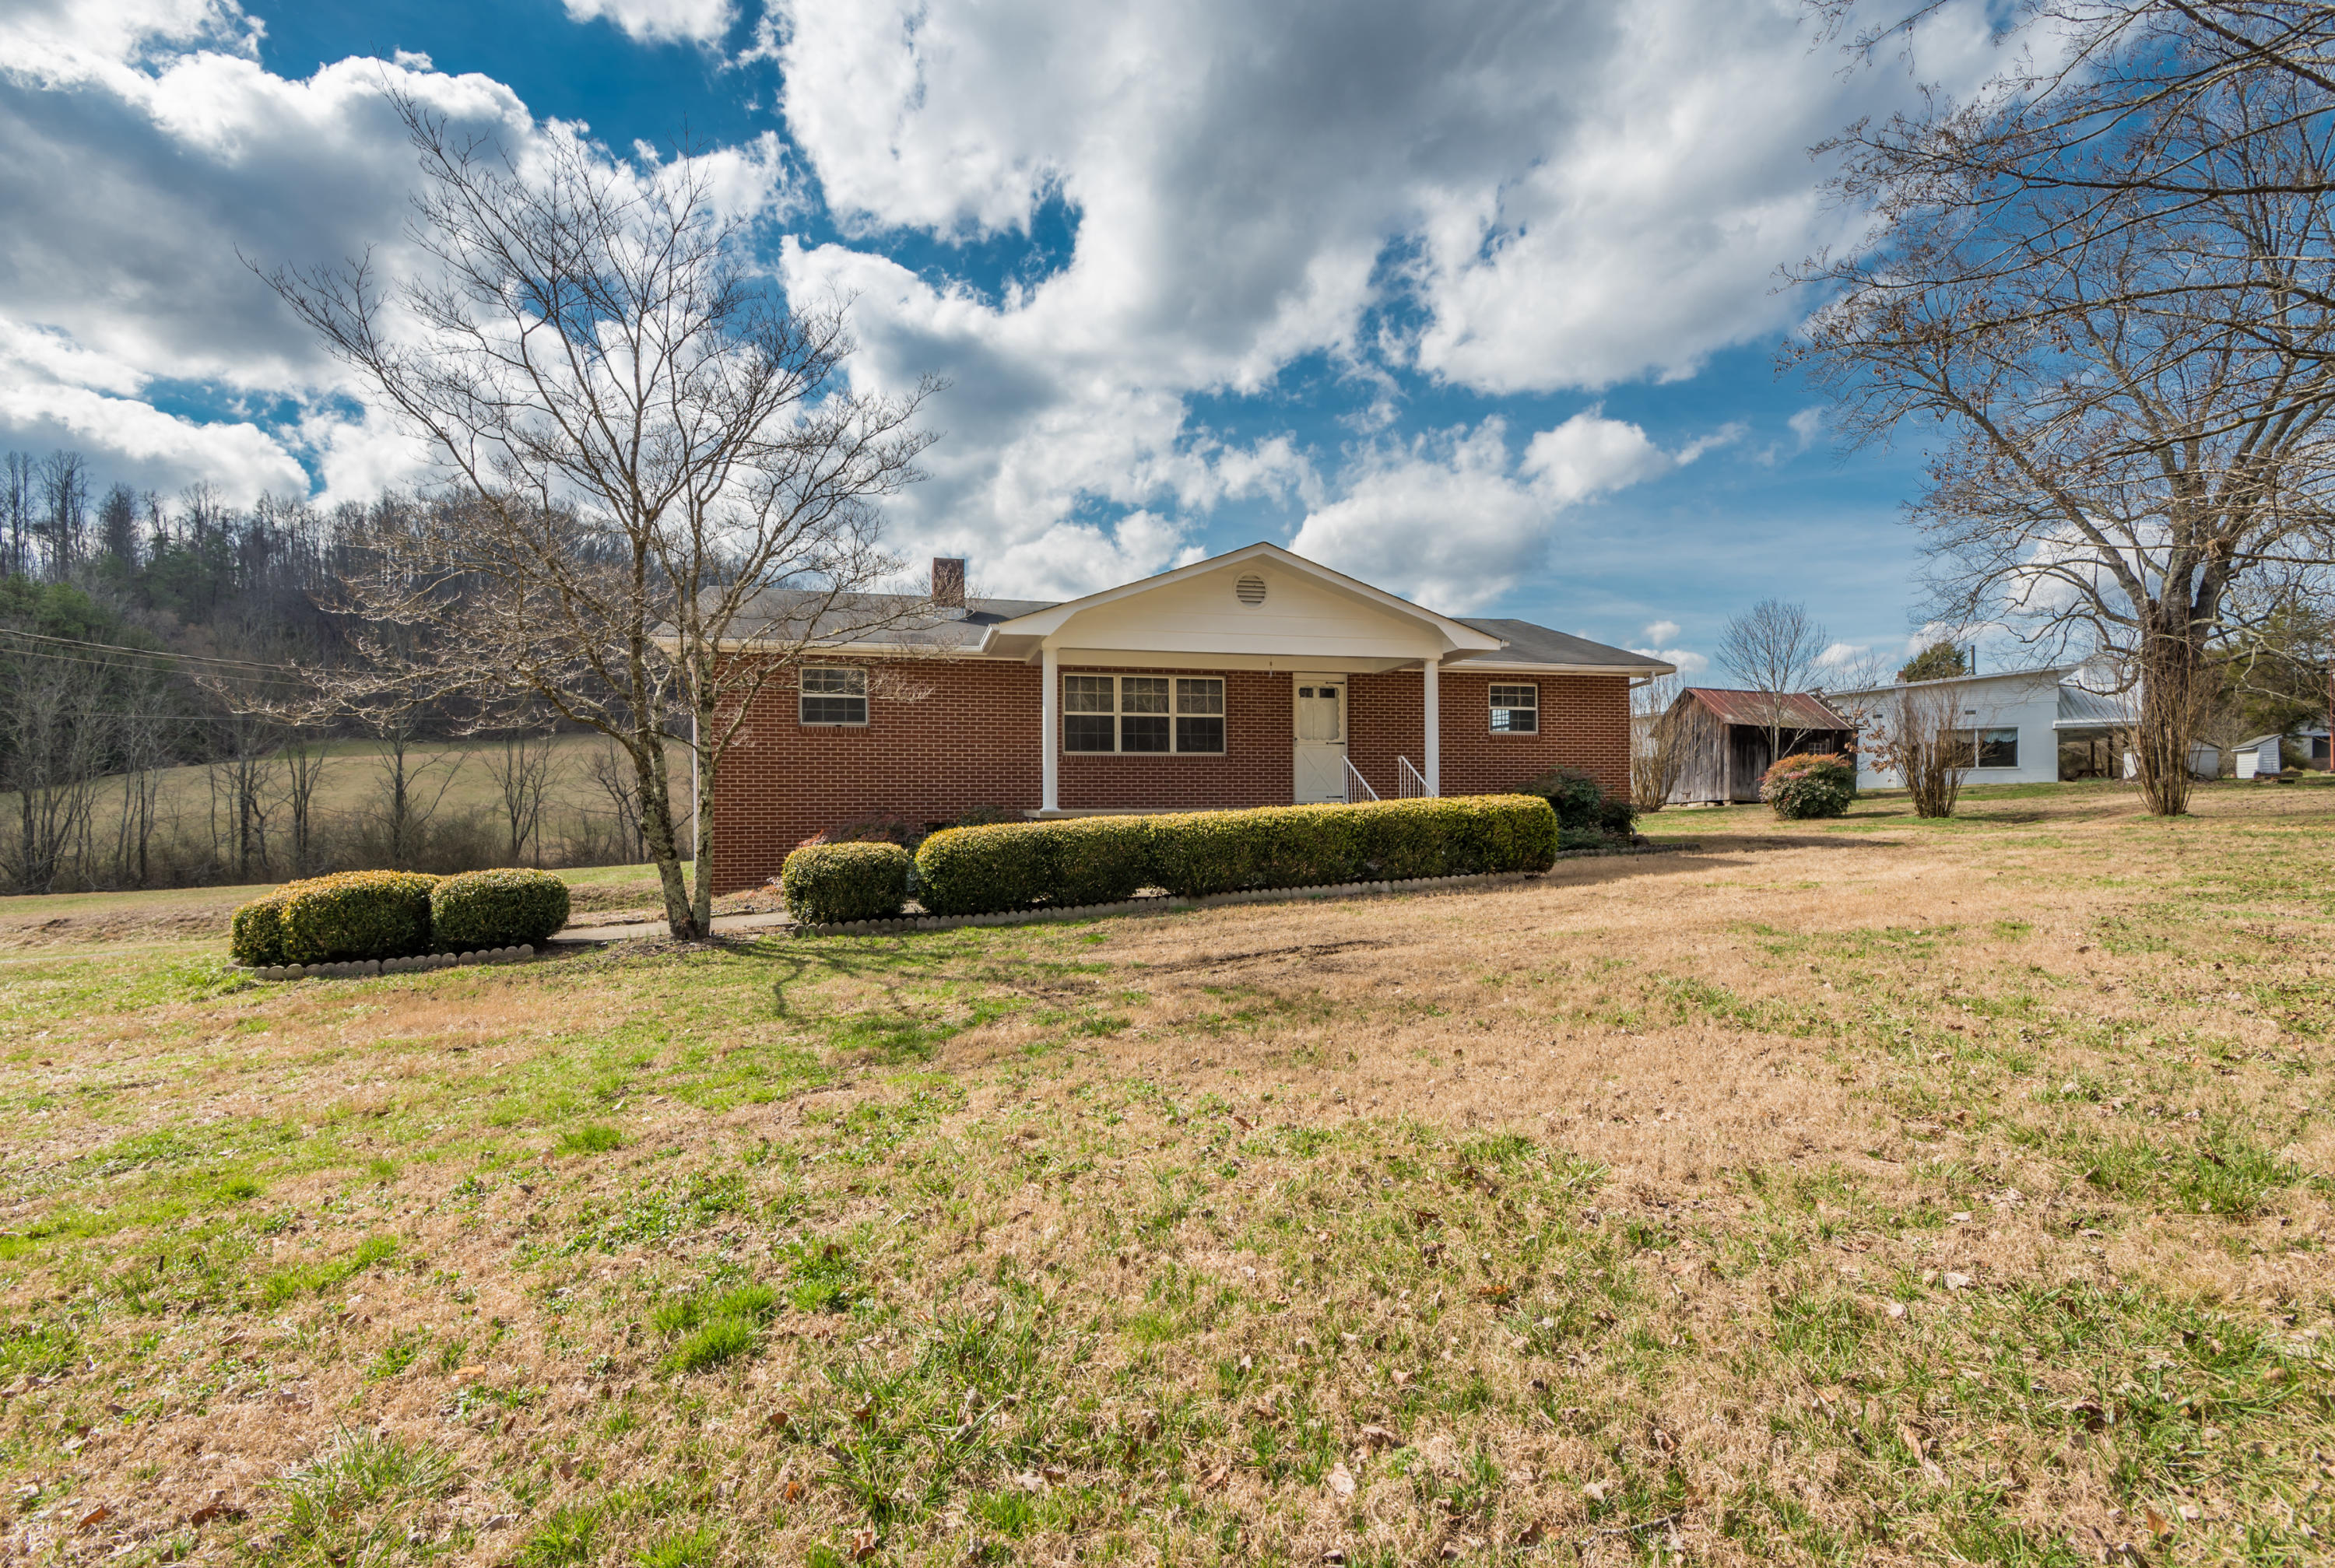 155 Raccoon Valley Tract #4 Rd, Maynardville, Tennessee 37807, 3 Bedrooms Bedrooms, ,1 BathroomBathrooms,Single Family,For Sale,Raccoon Valley Tract #4,1031401